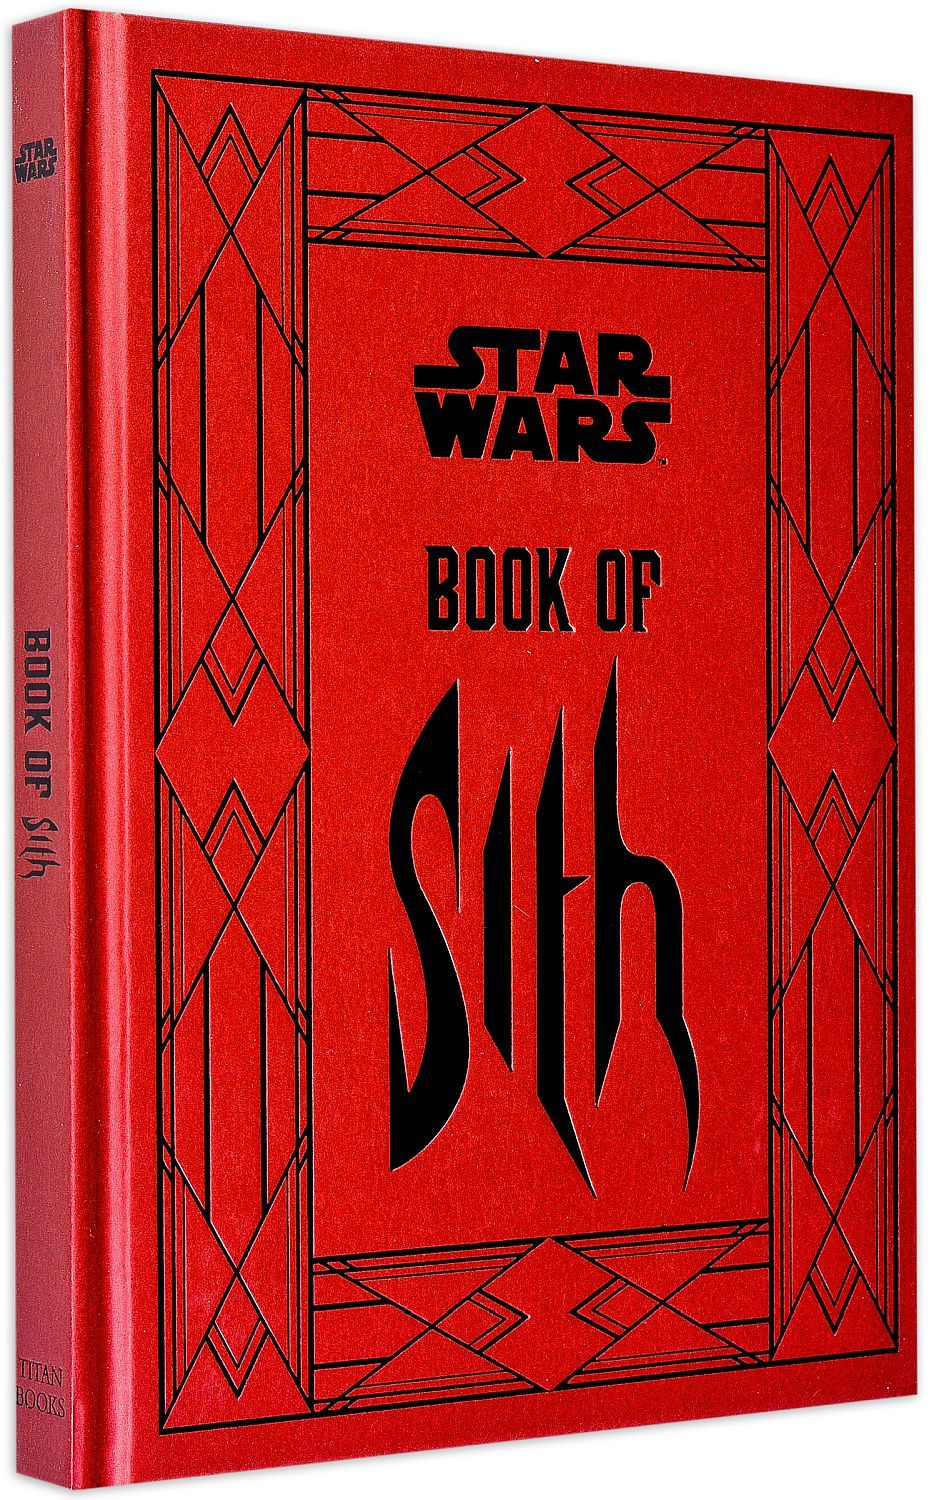 Star Wars. Book of Sith: Secrets from the Dark Side - 1